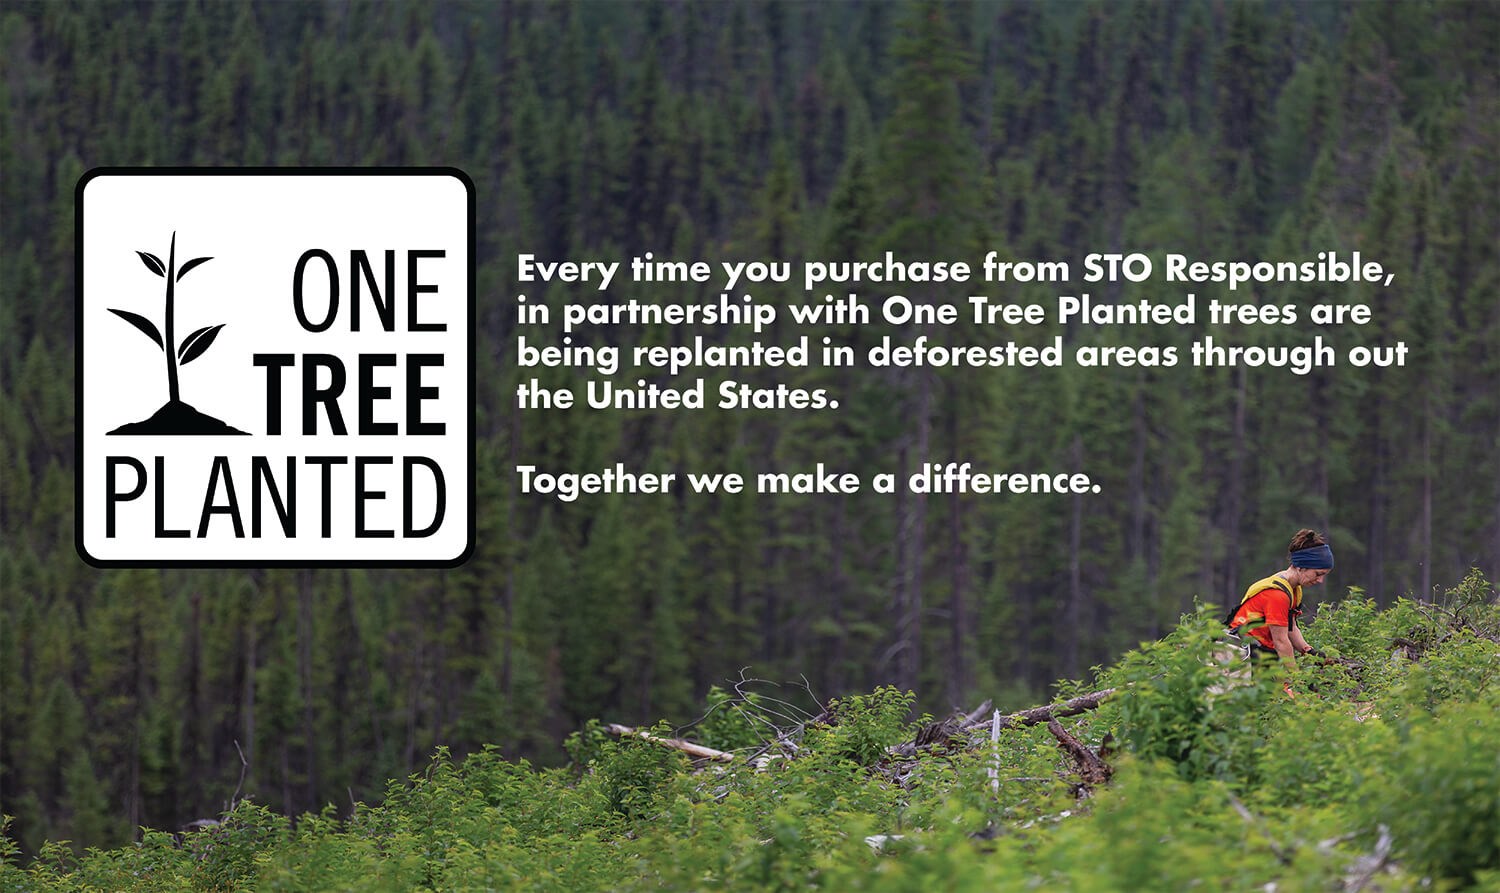 STO-Responsible is a proud partner with One Tree Planted